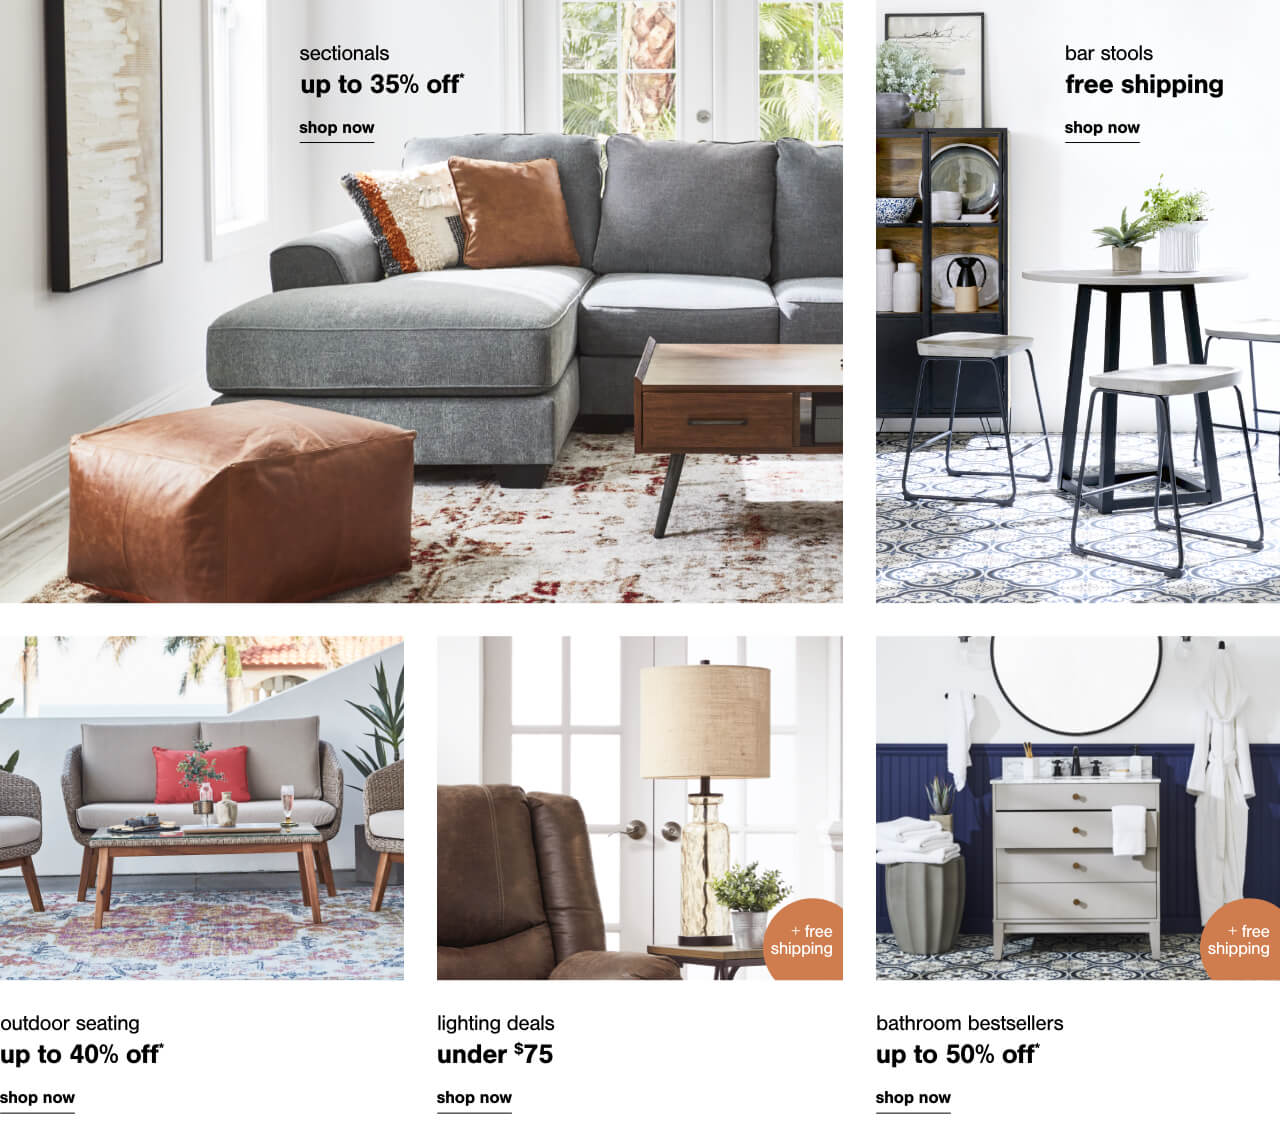 Sectionals up to 35% off,Free Shipping on Barstool Favorites,Bathroom Best Sellers up to 50% off + Free Shipping,Outdoor Seating up to 40% off,Lighting Deals Under $75 + Free Shipping